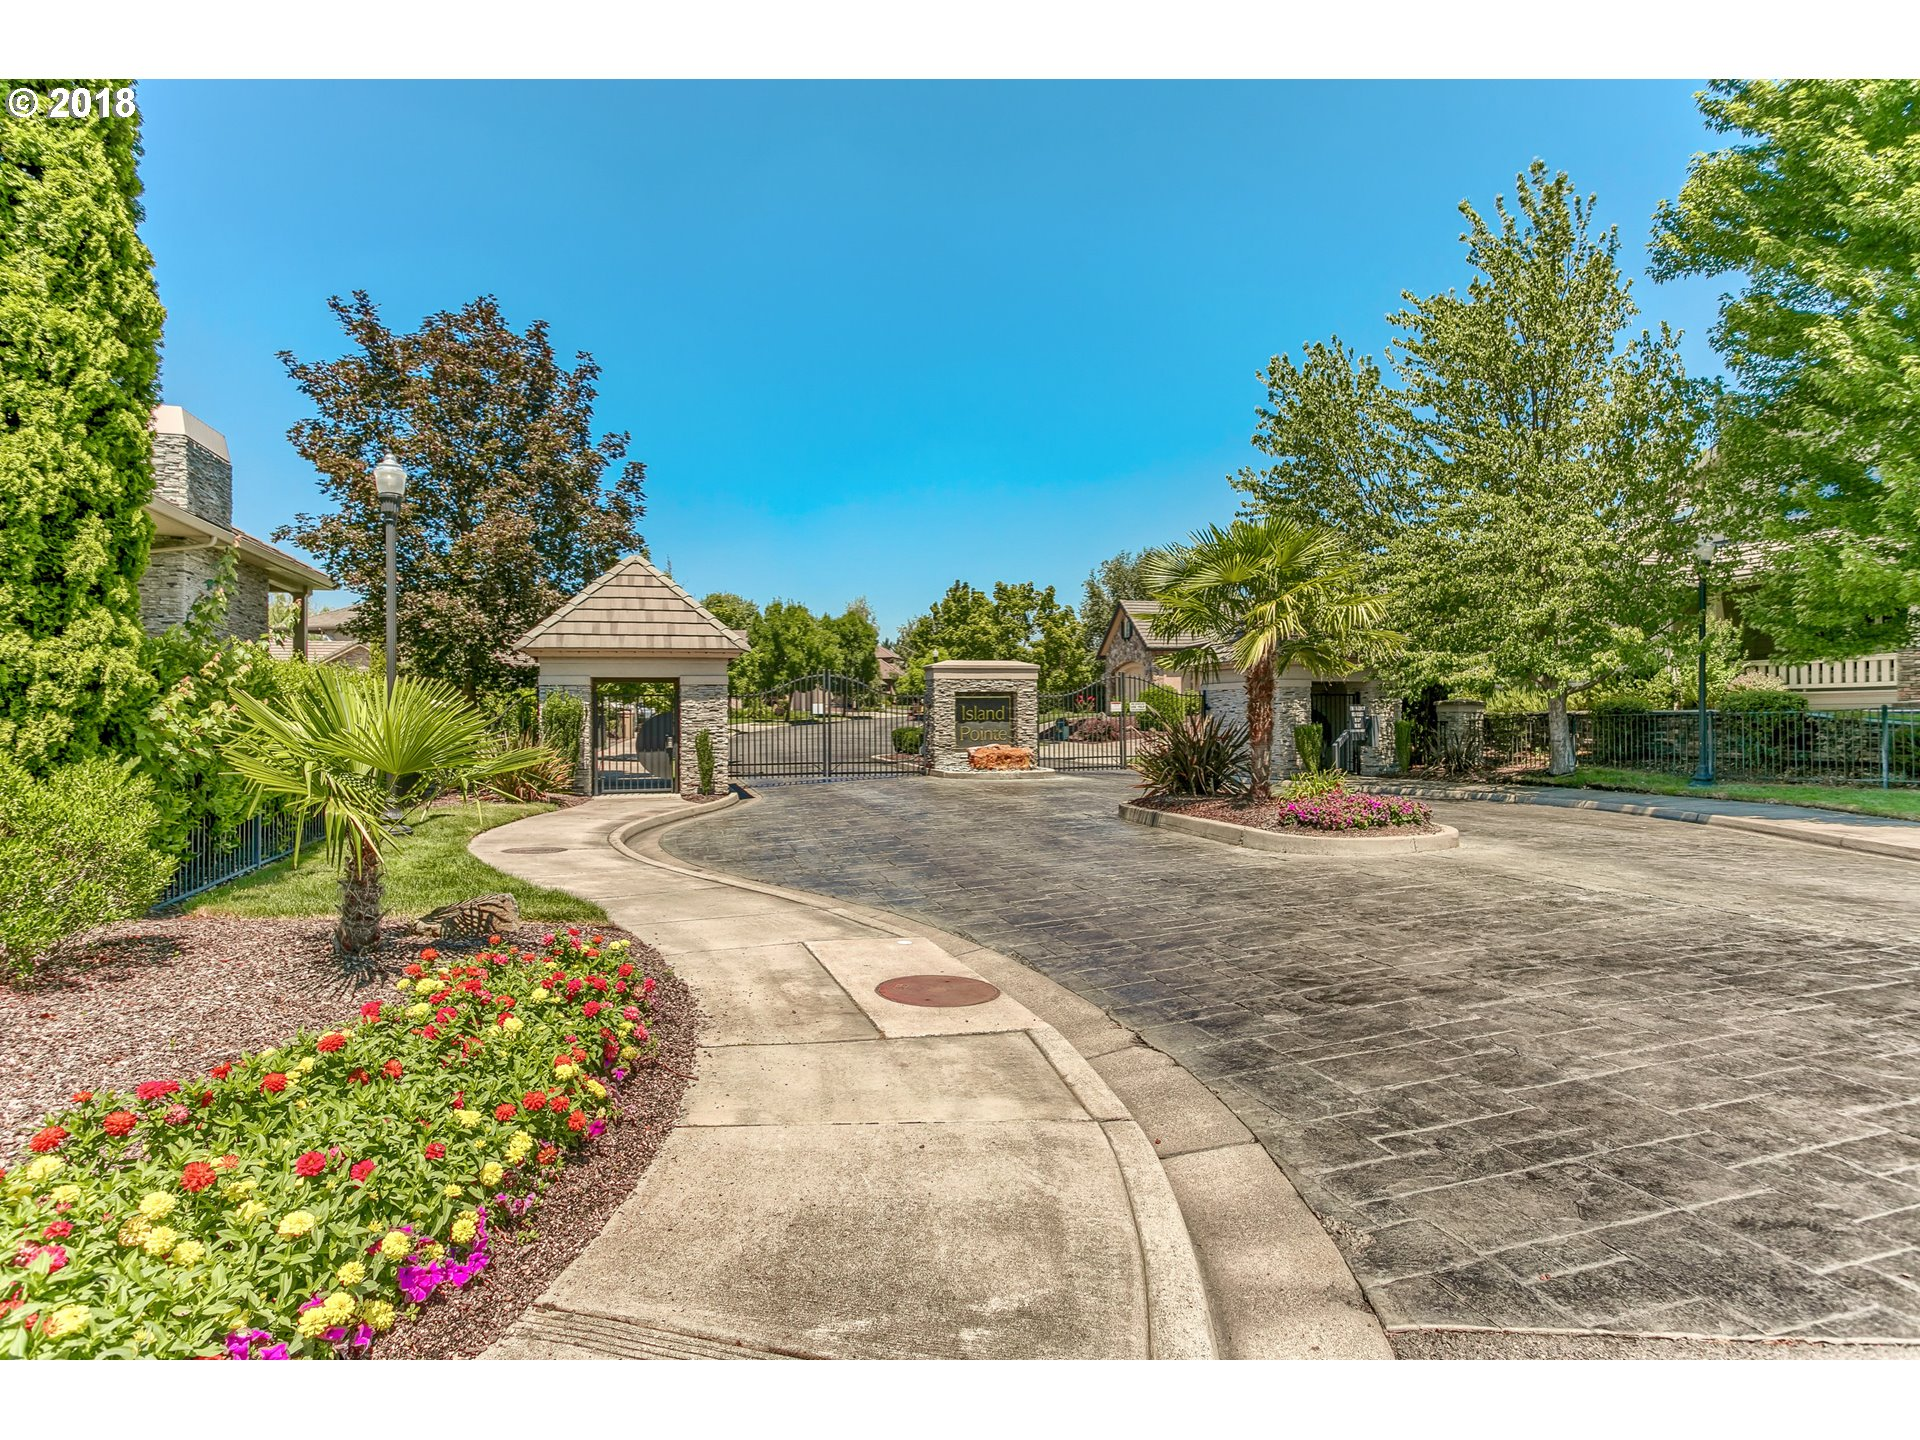 3379 CALLE VISTA DR Medford, OR 97504 - MLS #: 18692310